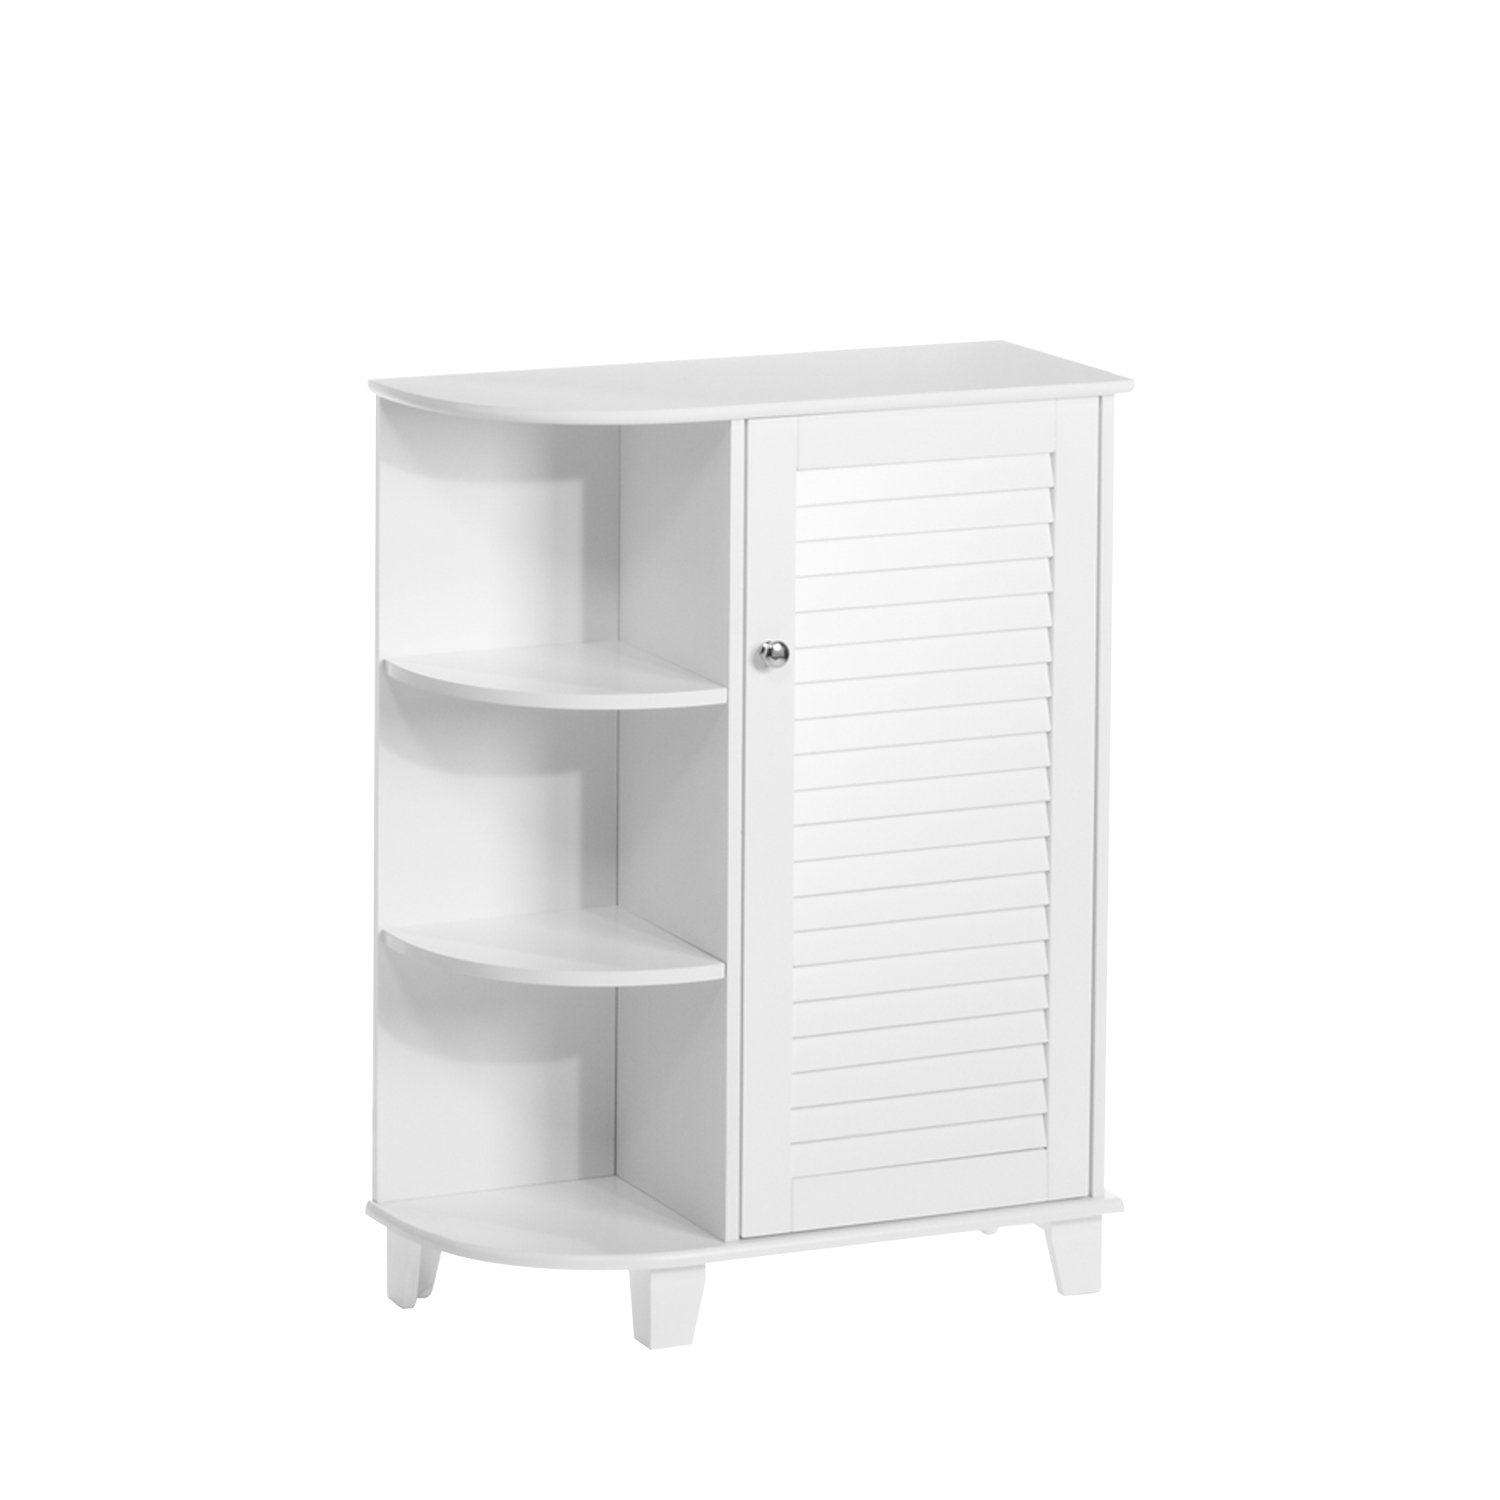 RiverRidge Ellsworth Collection Floor Cabinet with Side Shelves, White by RiverRidge Home Products (Image #1)